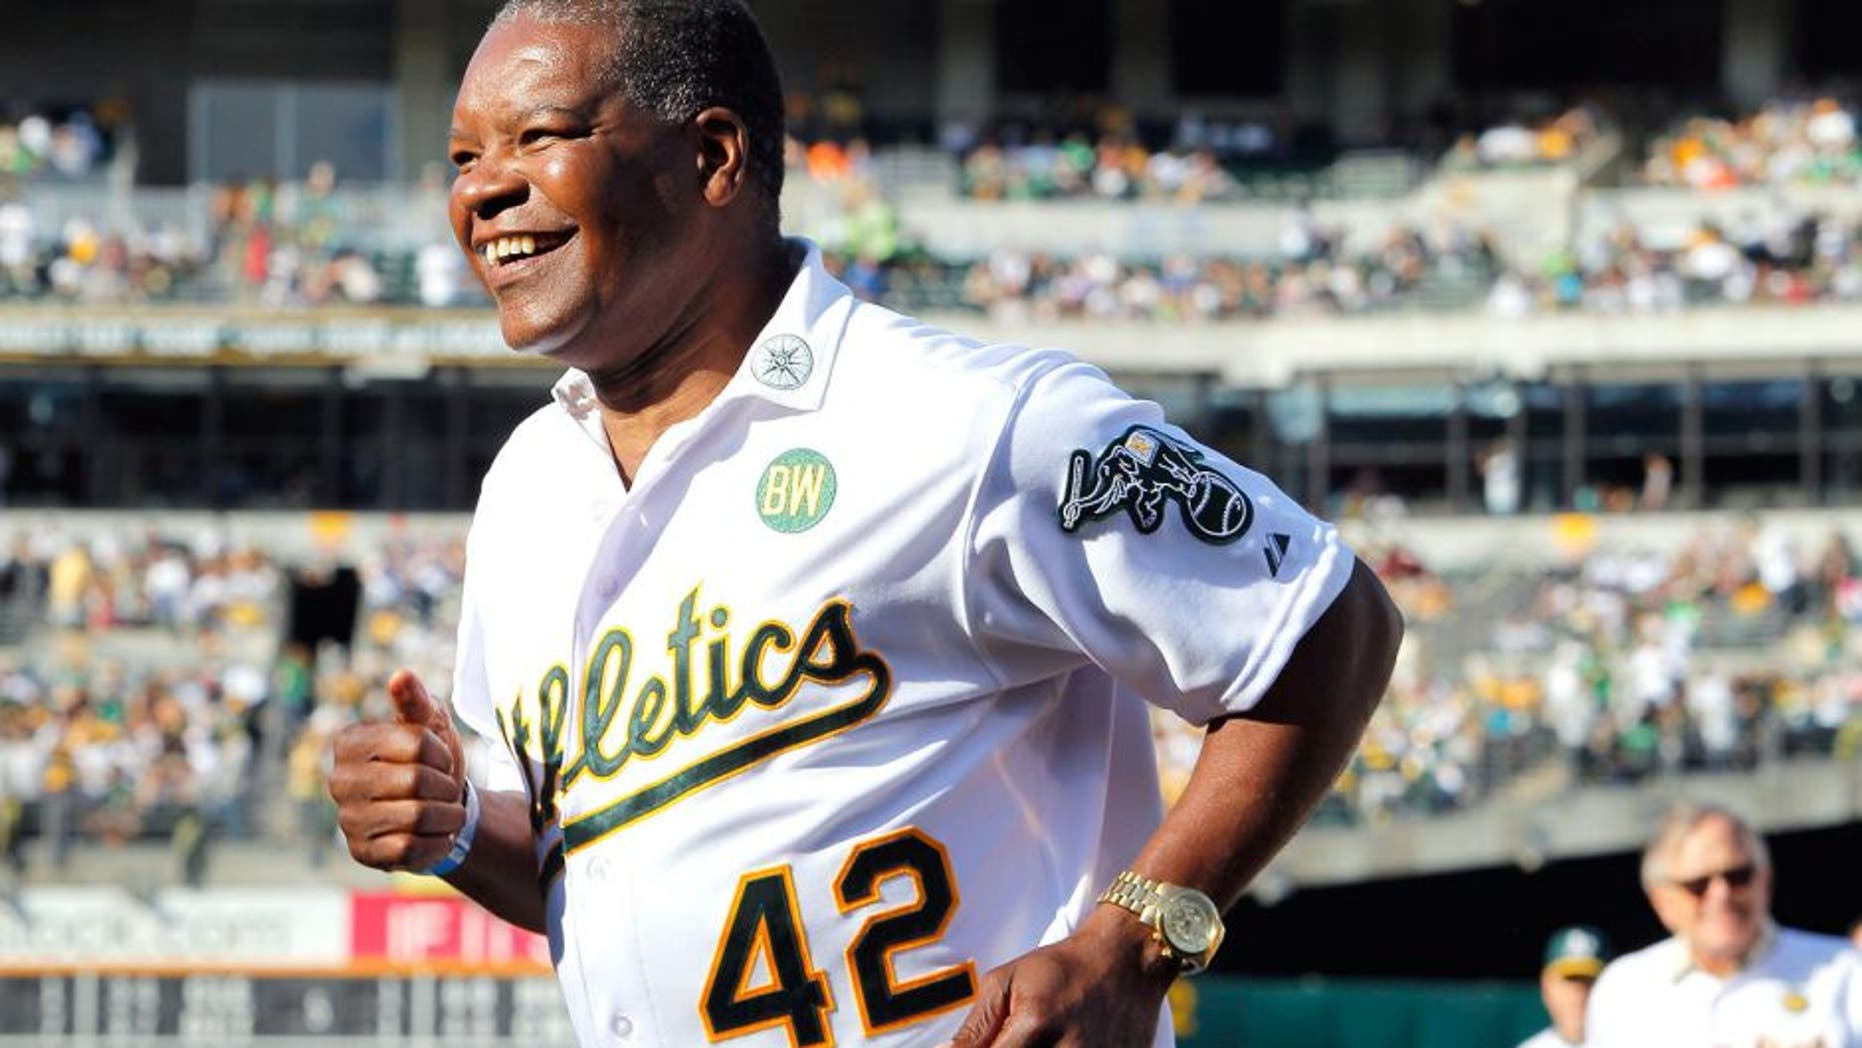 OAKLAND, CA - JULY 19: Dave Henderson #42 of the 1989 Oakland A's joins his teammates as they celebrate their World Series championship 25 years ago against the San Francisco Giants before a game at O.co Coliseum on July 19, 2014 in Oakland, California. (Photo by Brian Bahr/Getty Images)